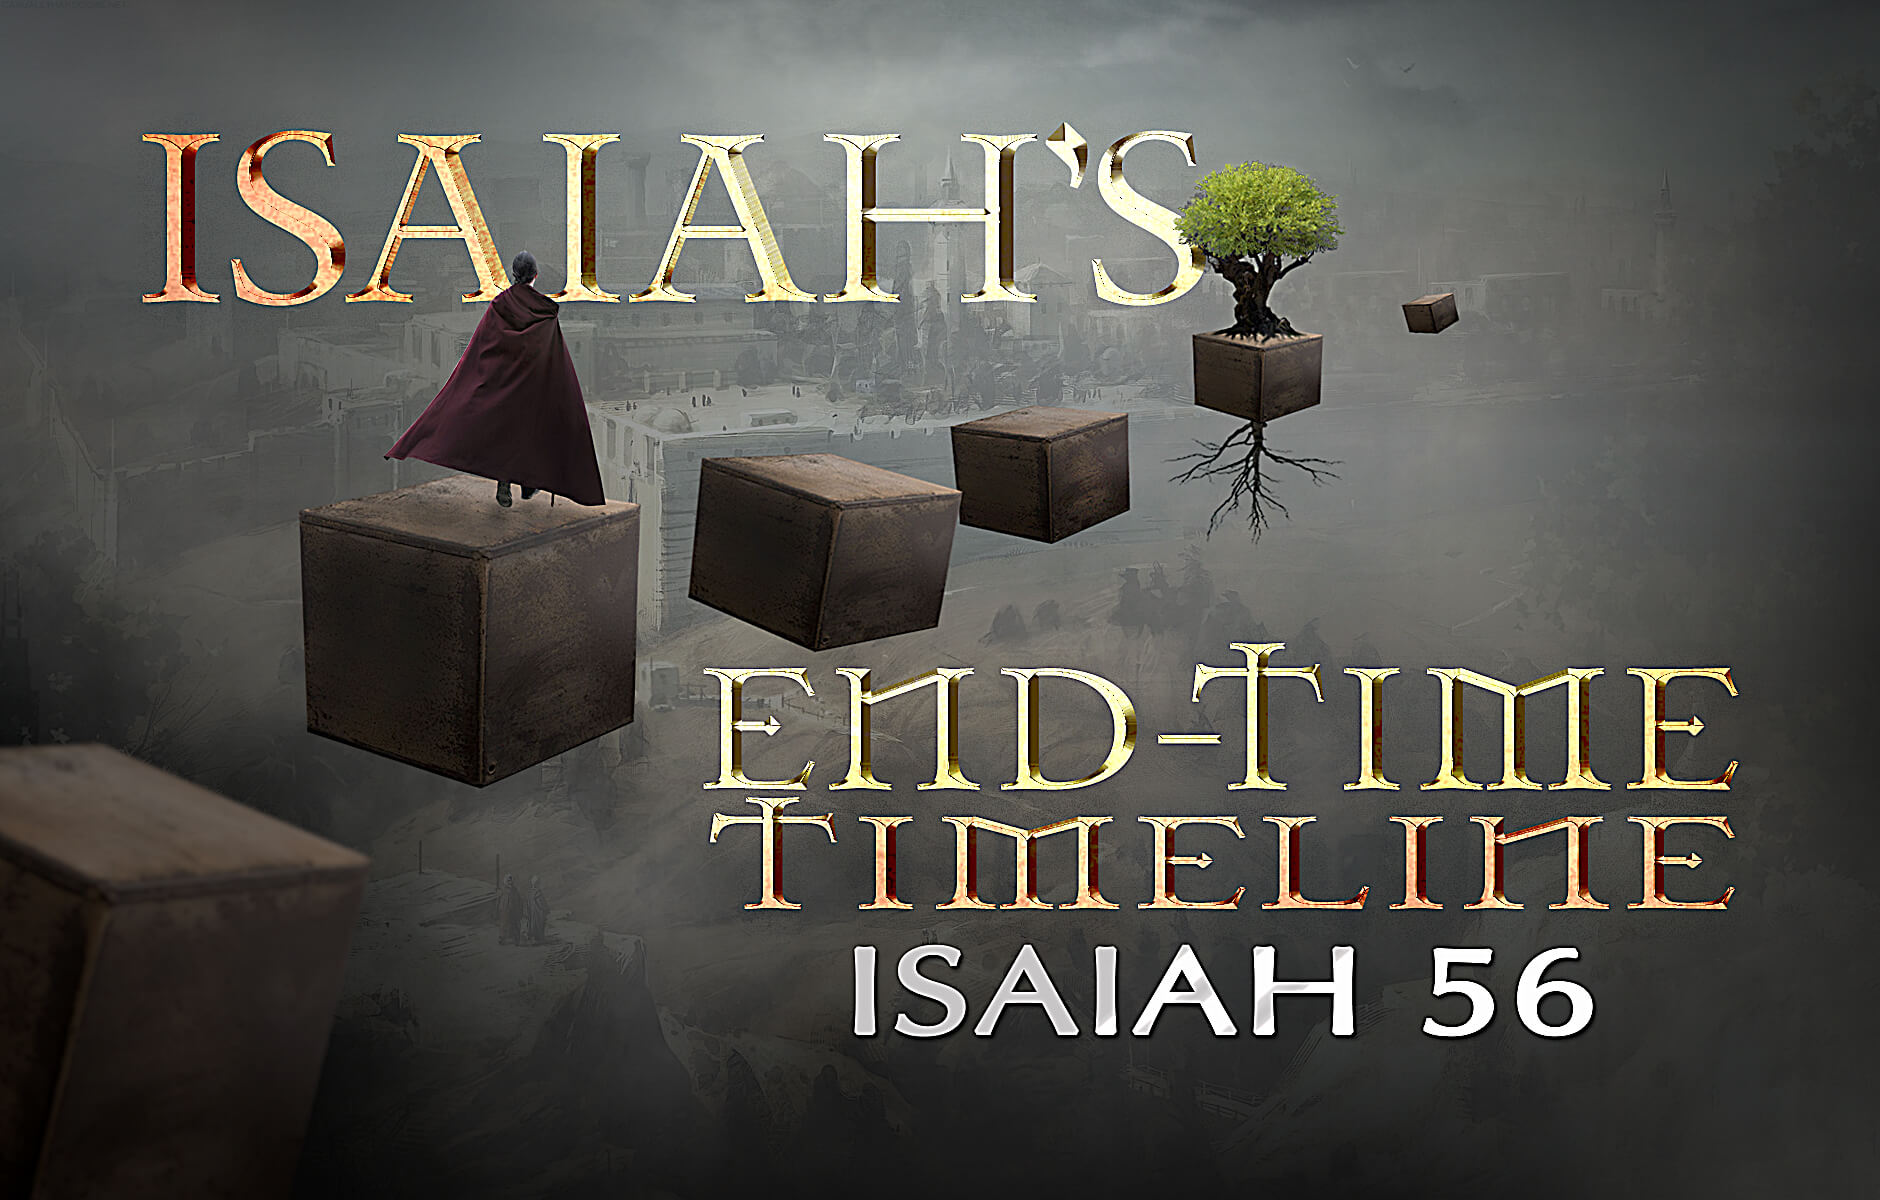 Isaiah's End-time Timeline Chapter 56